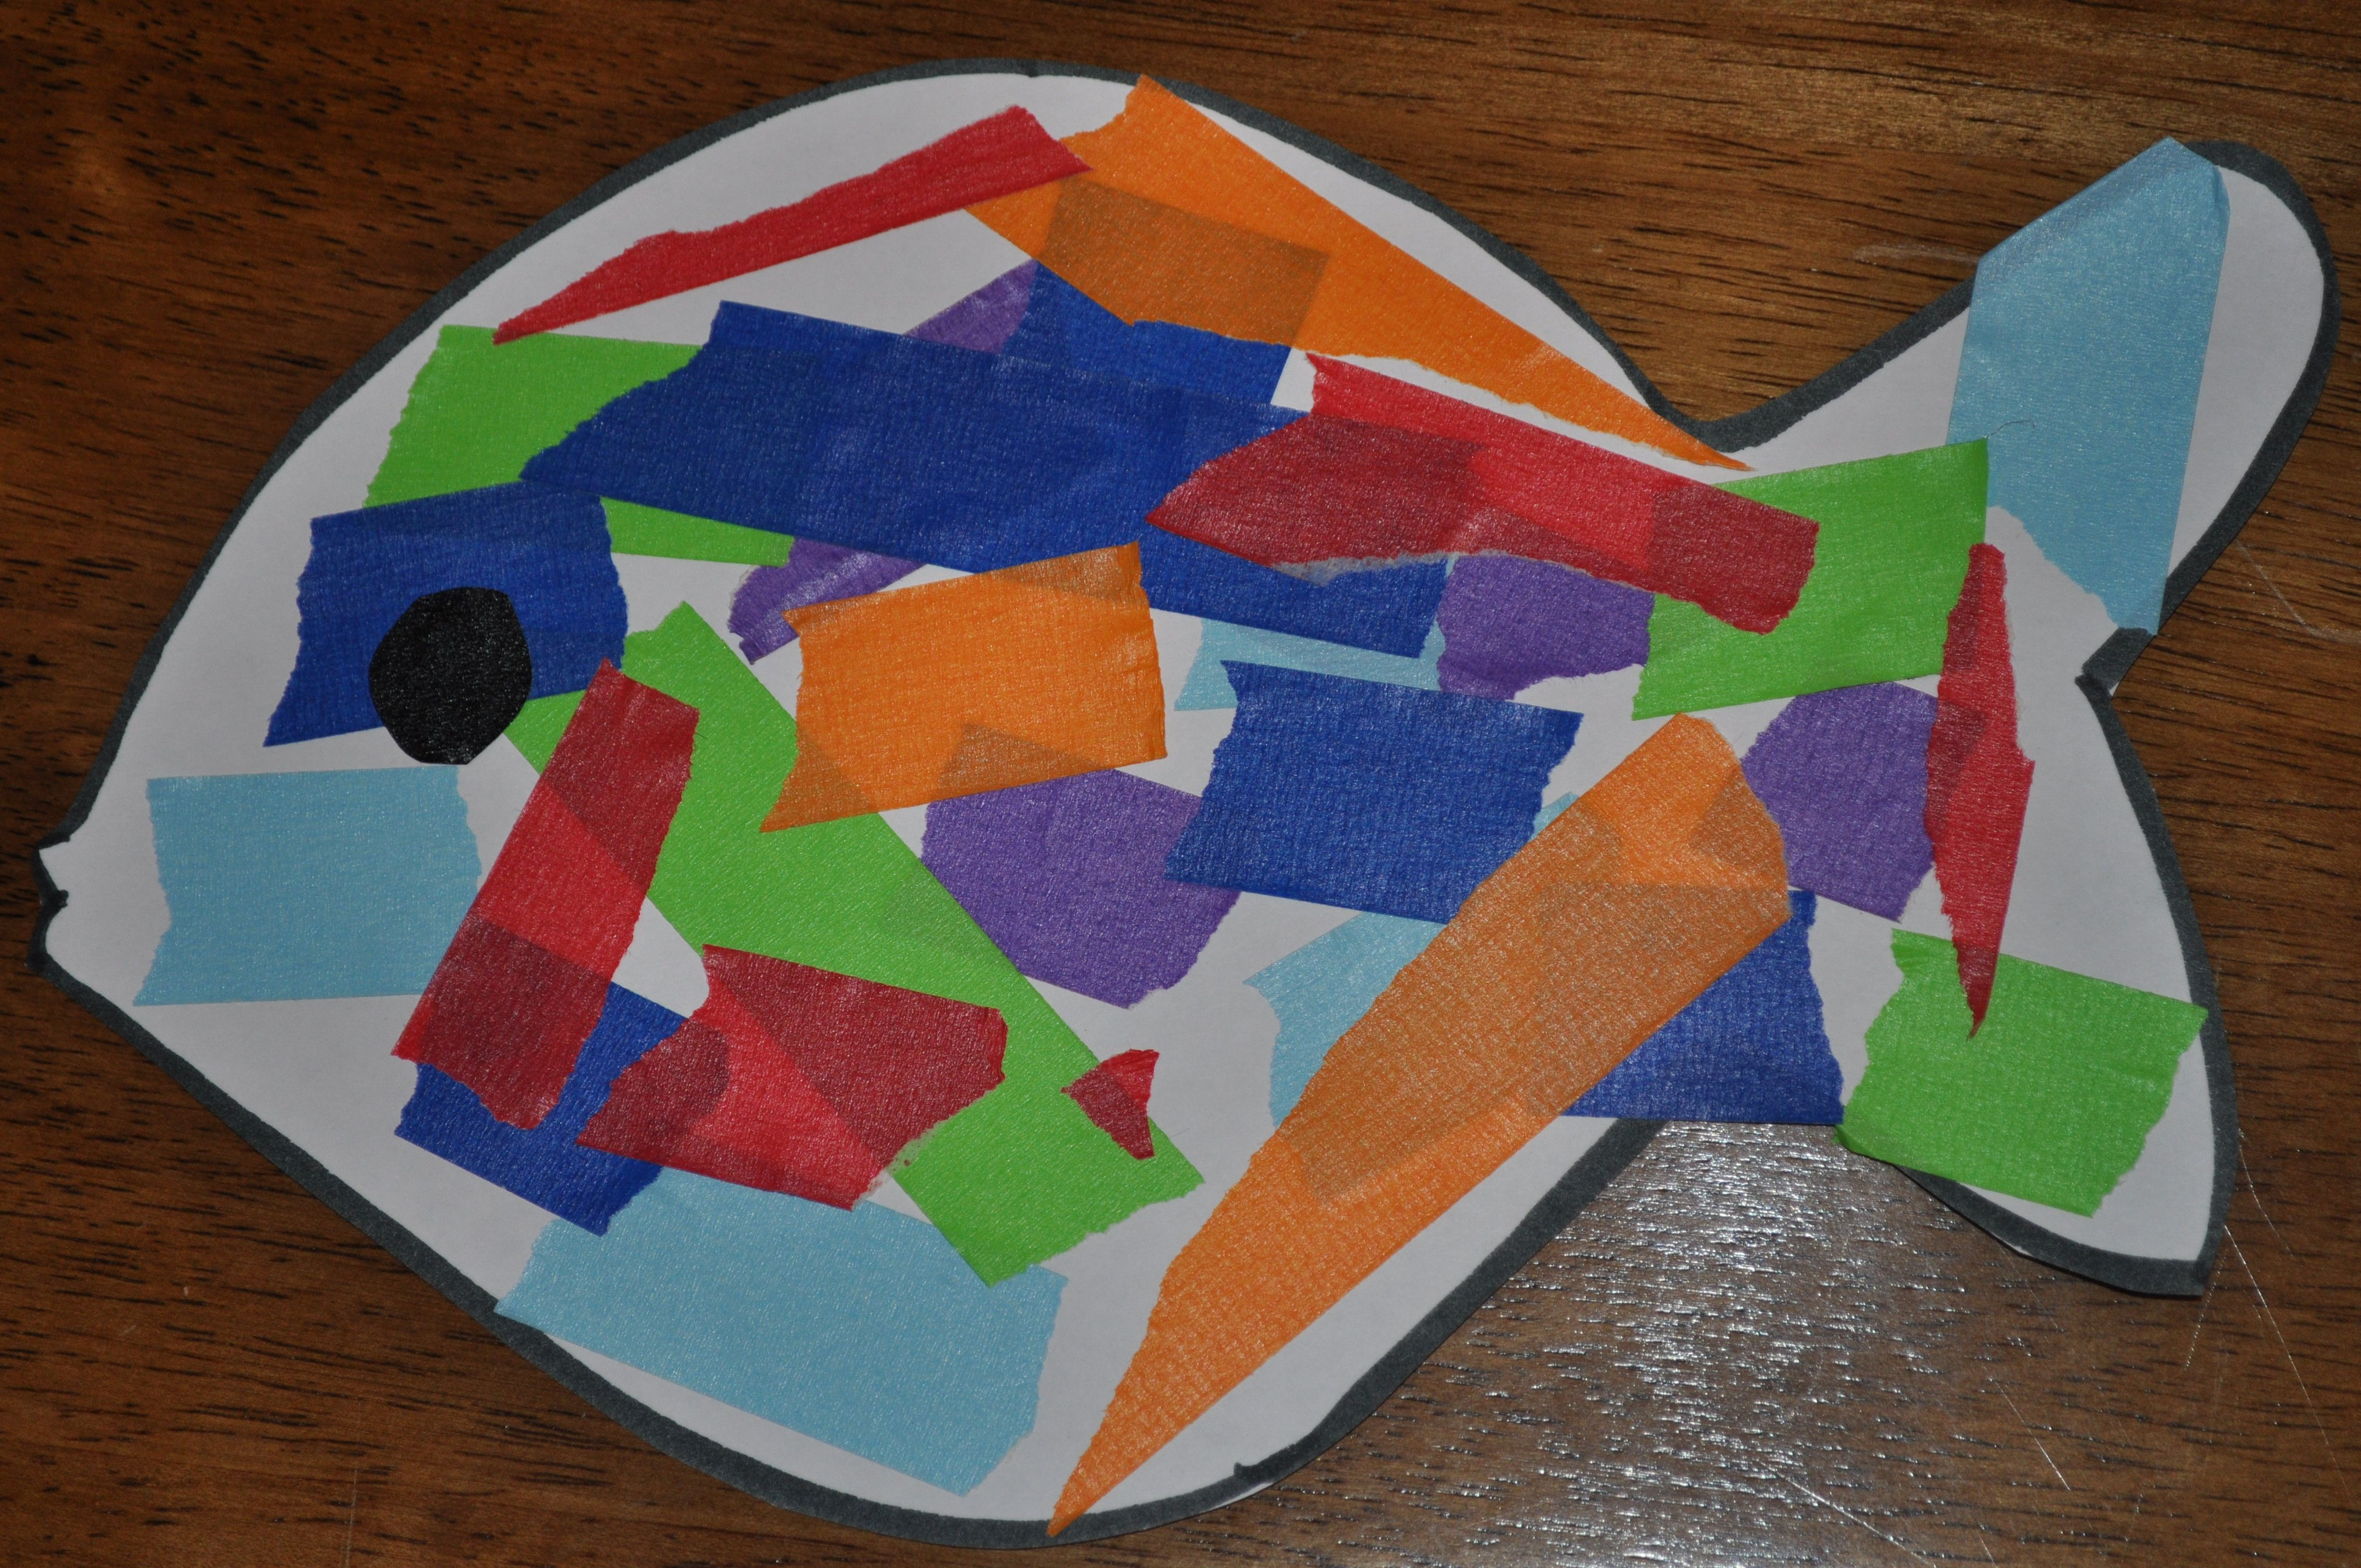 Best ideas about Preschoolers Arts And Crafts Ideas . Save or Pin Fun in Preschool with Ocean Theme Activities Now.